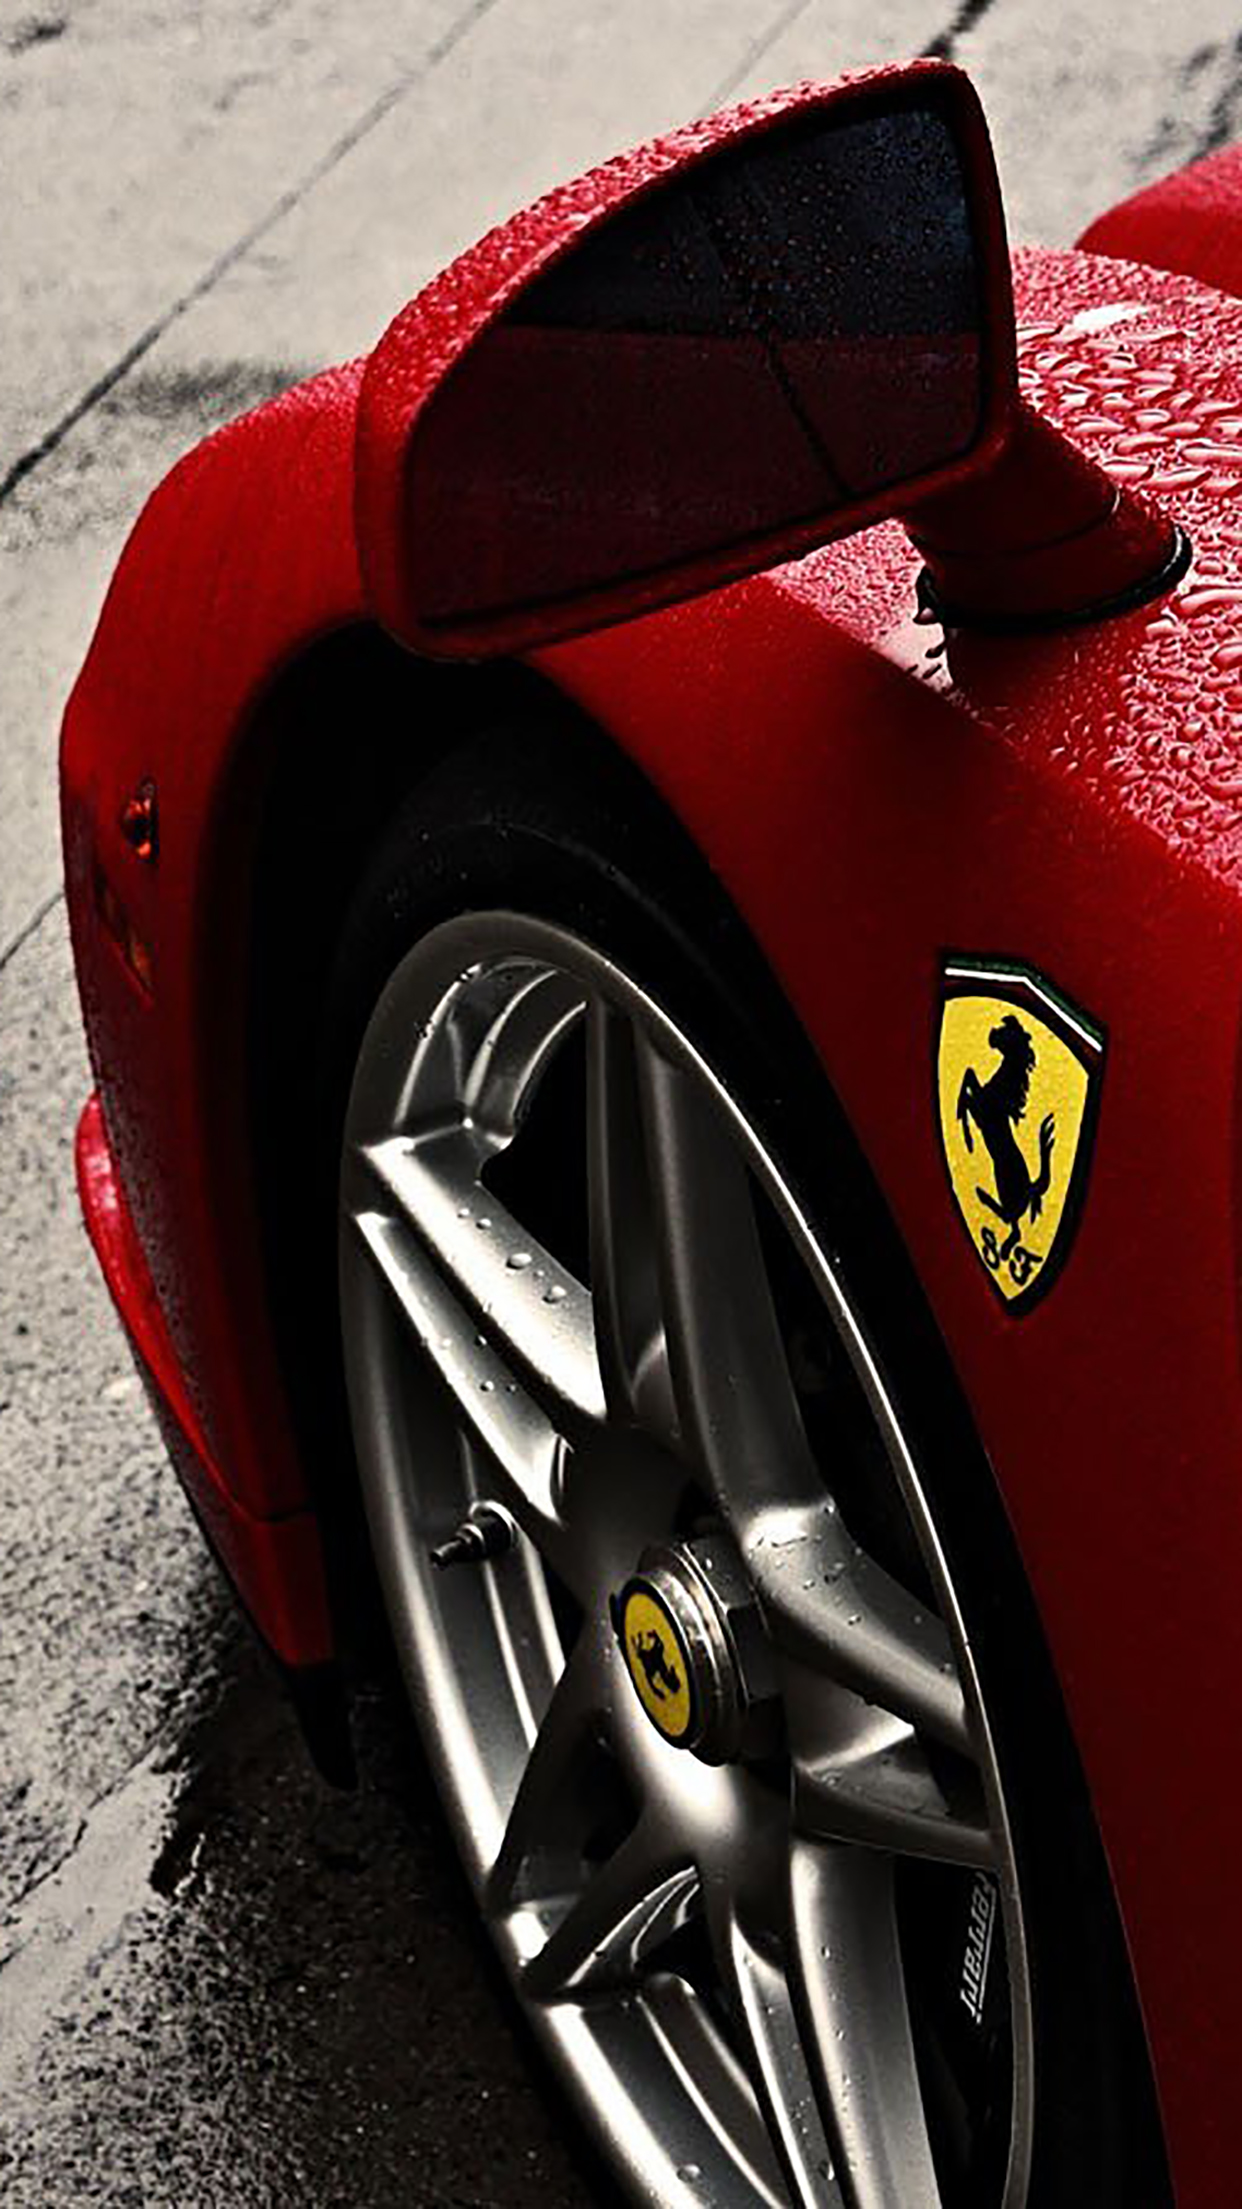 Ferrari : Enzo Ferrari Logo Rain Wheel Wallpapers for iPhone X, 8, 7